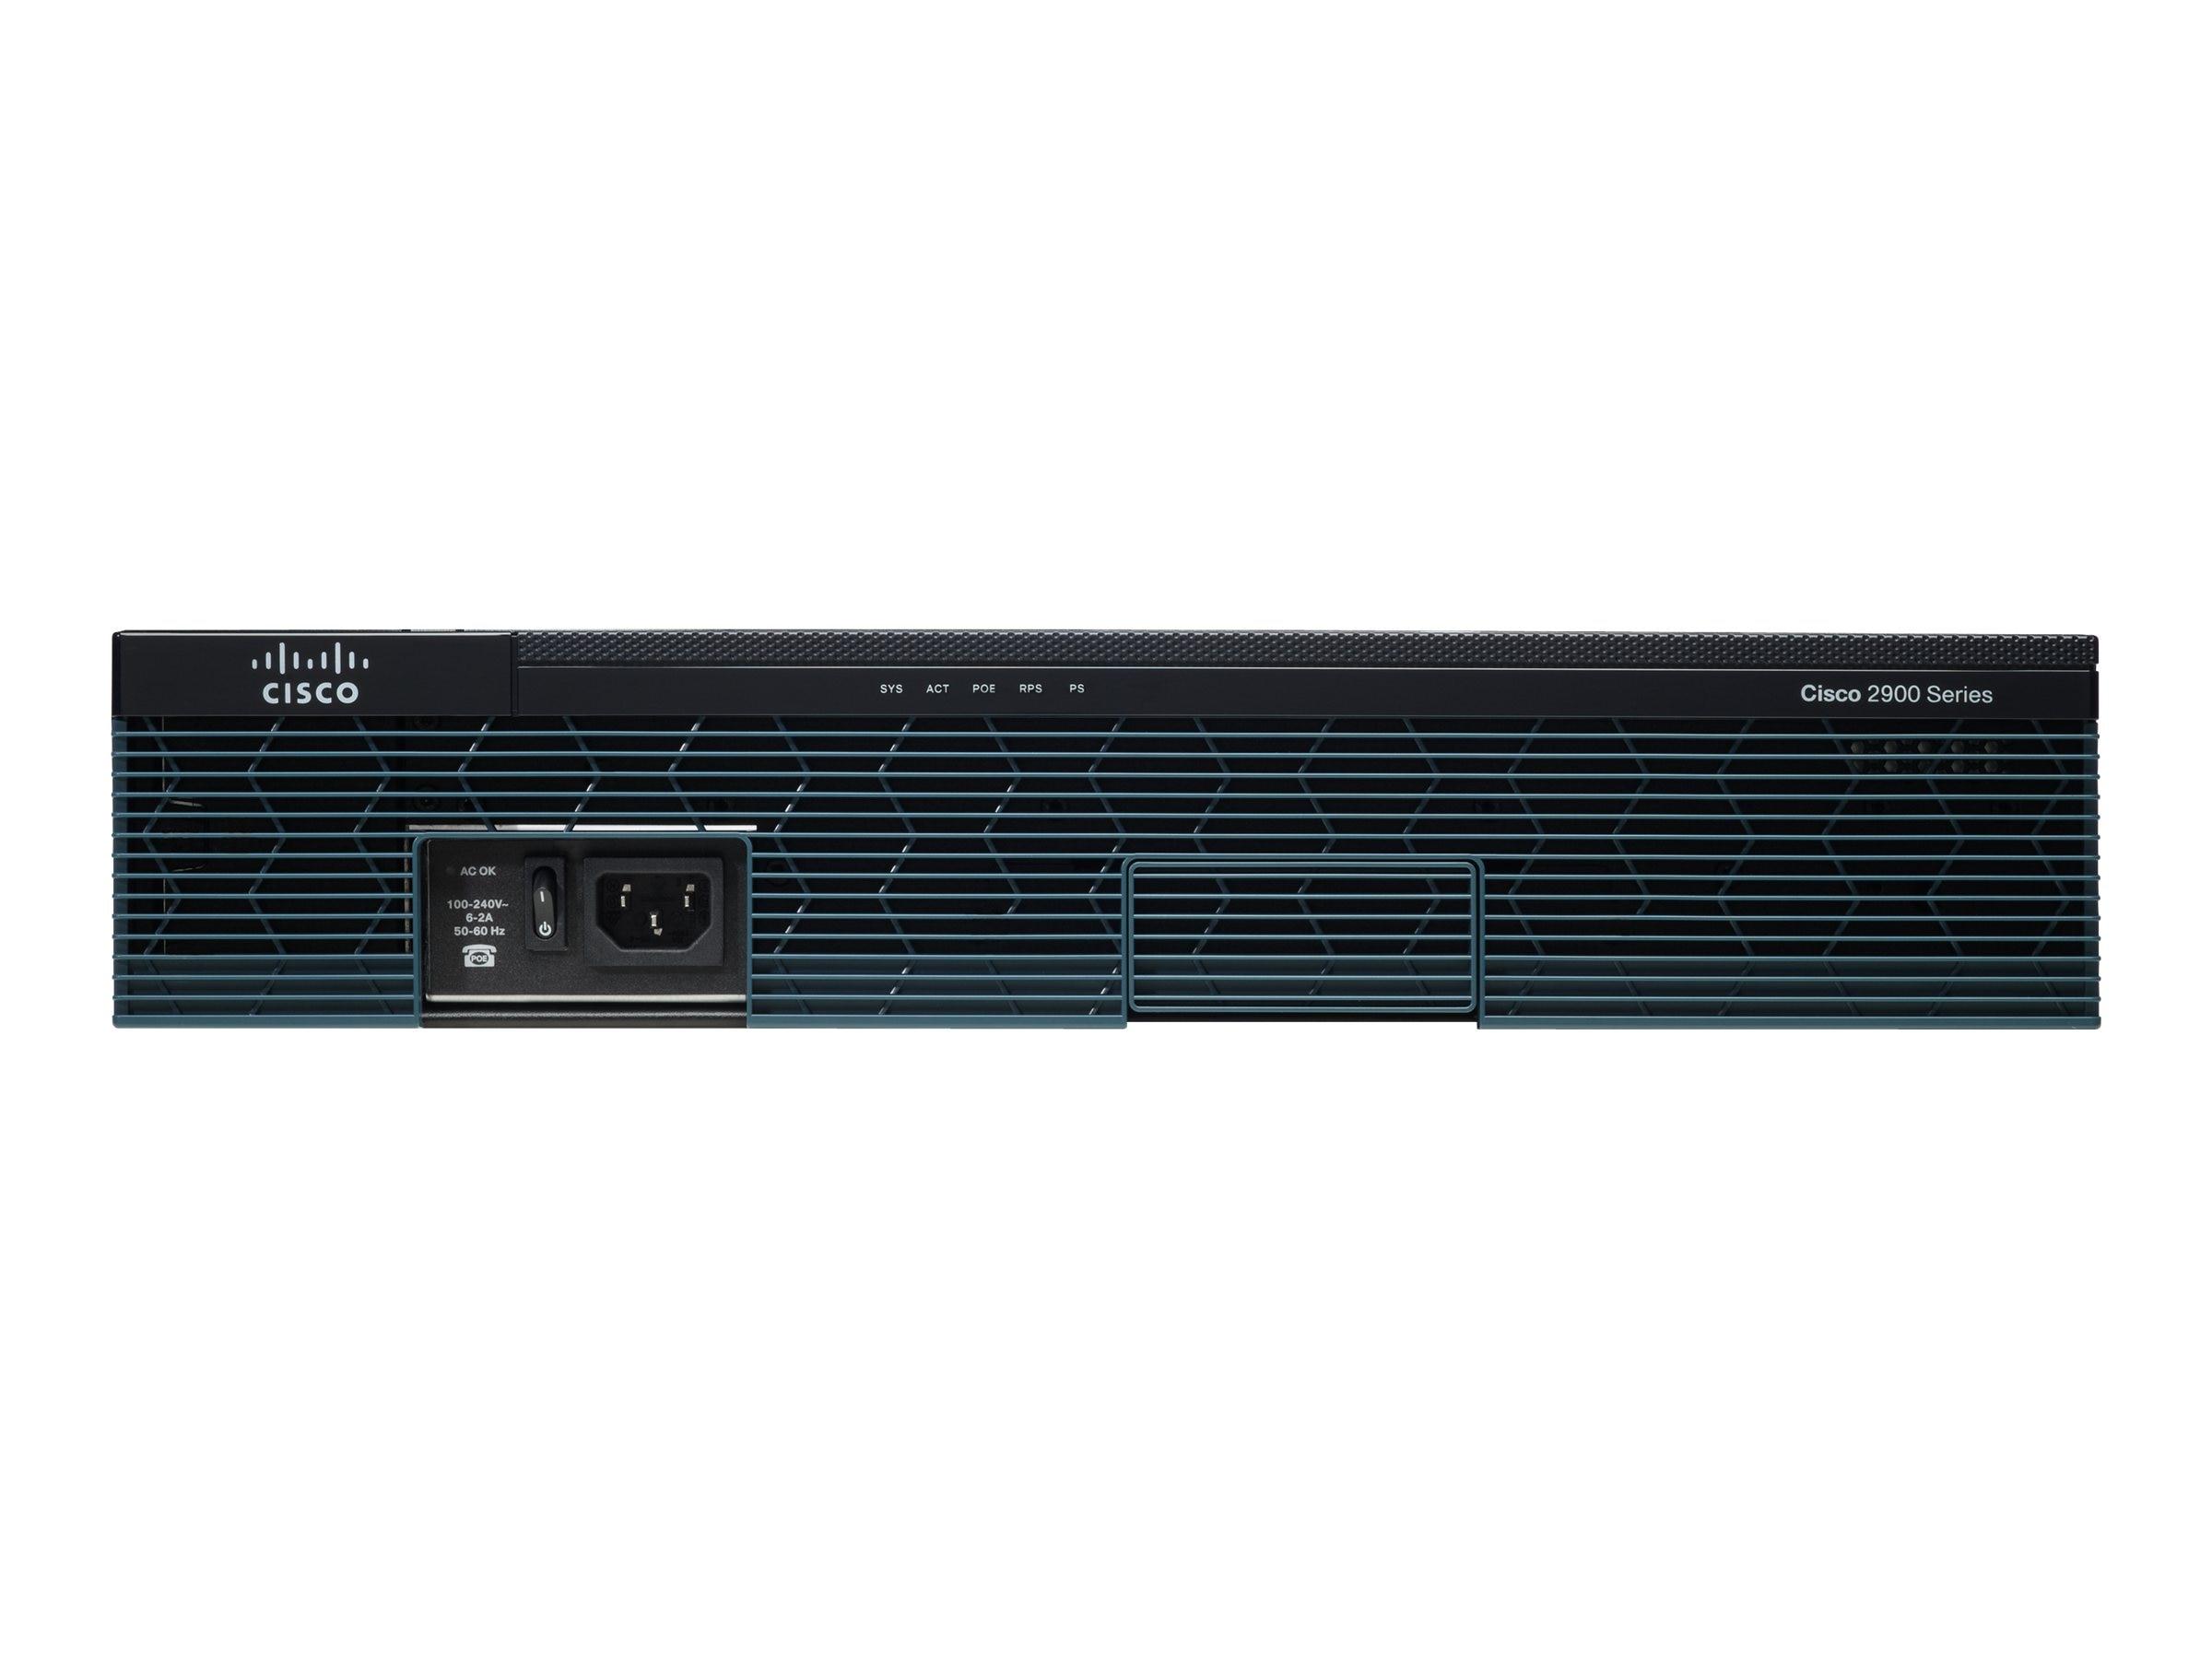 Cisco CISCO2911/K9 Image 2